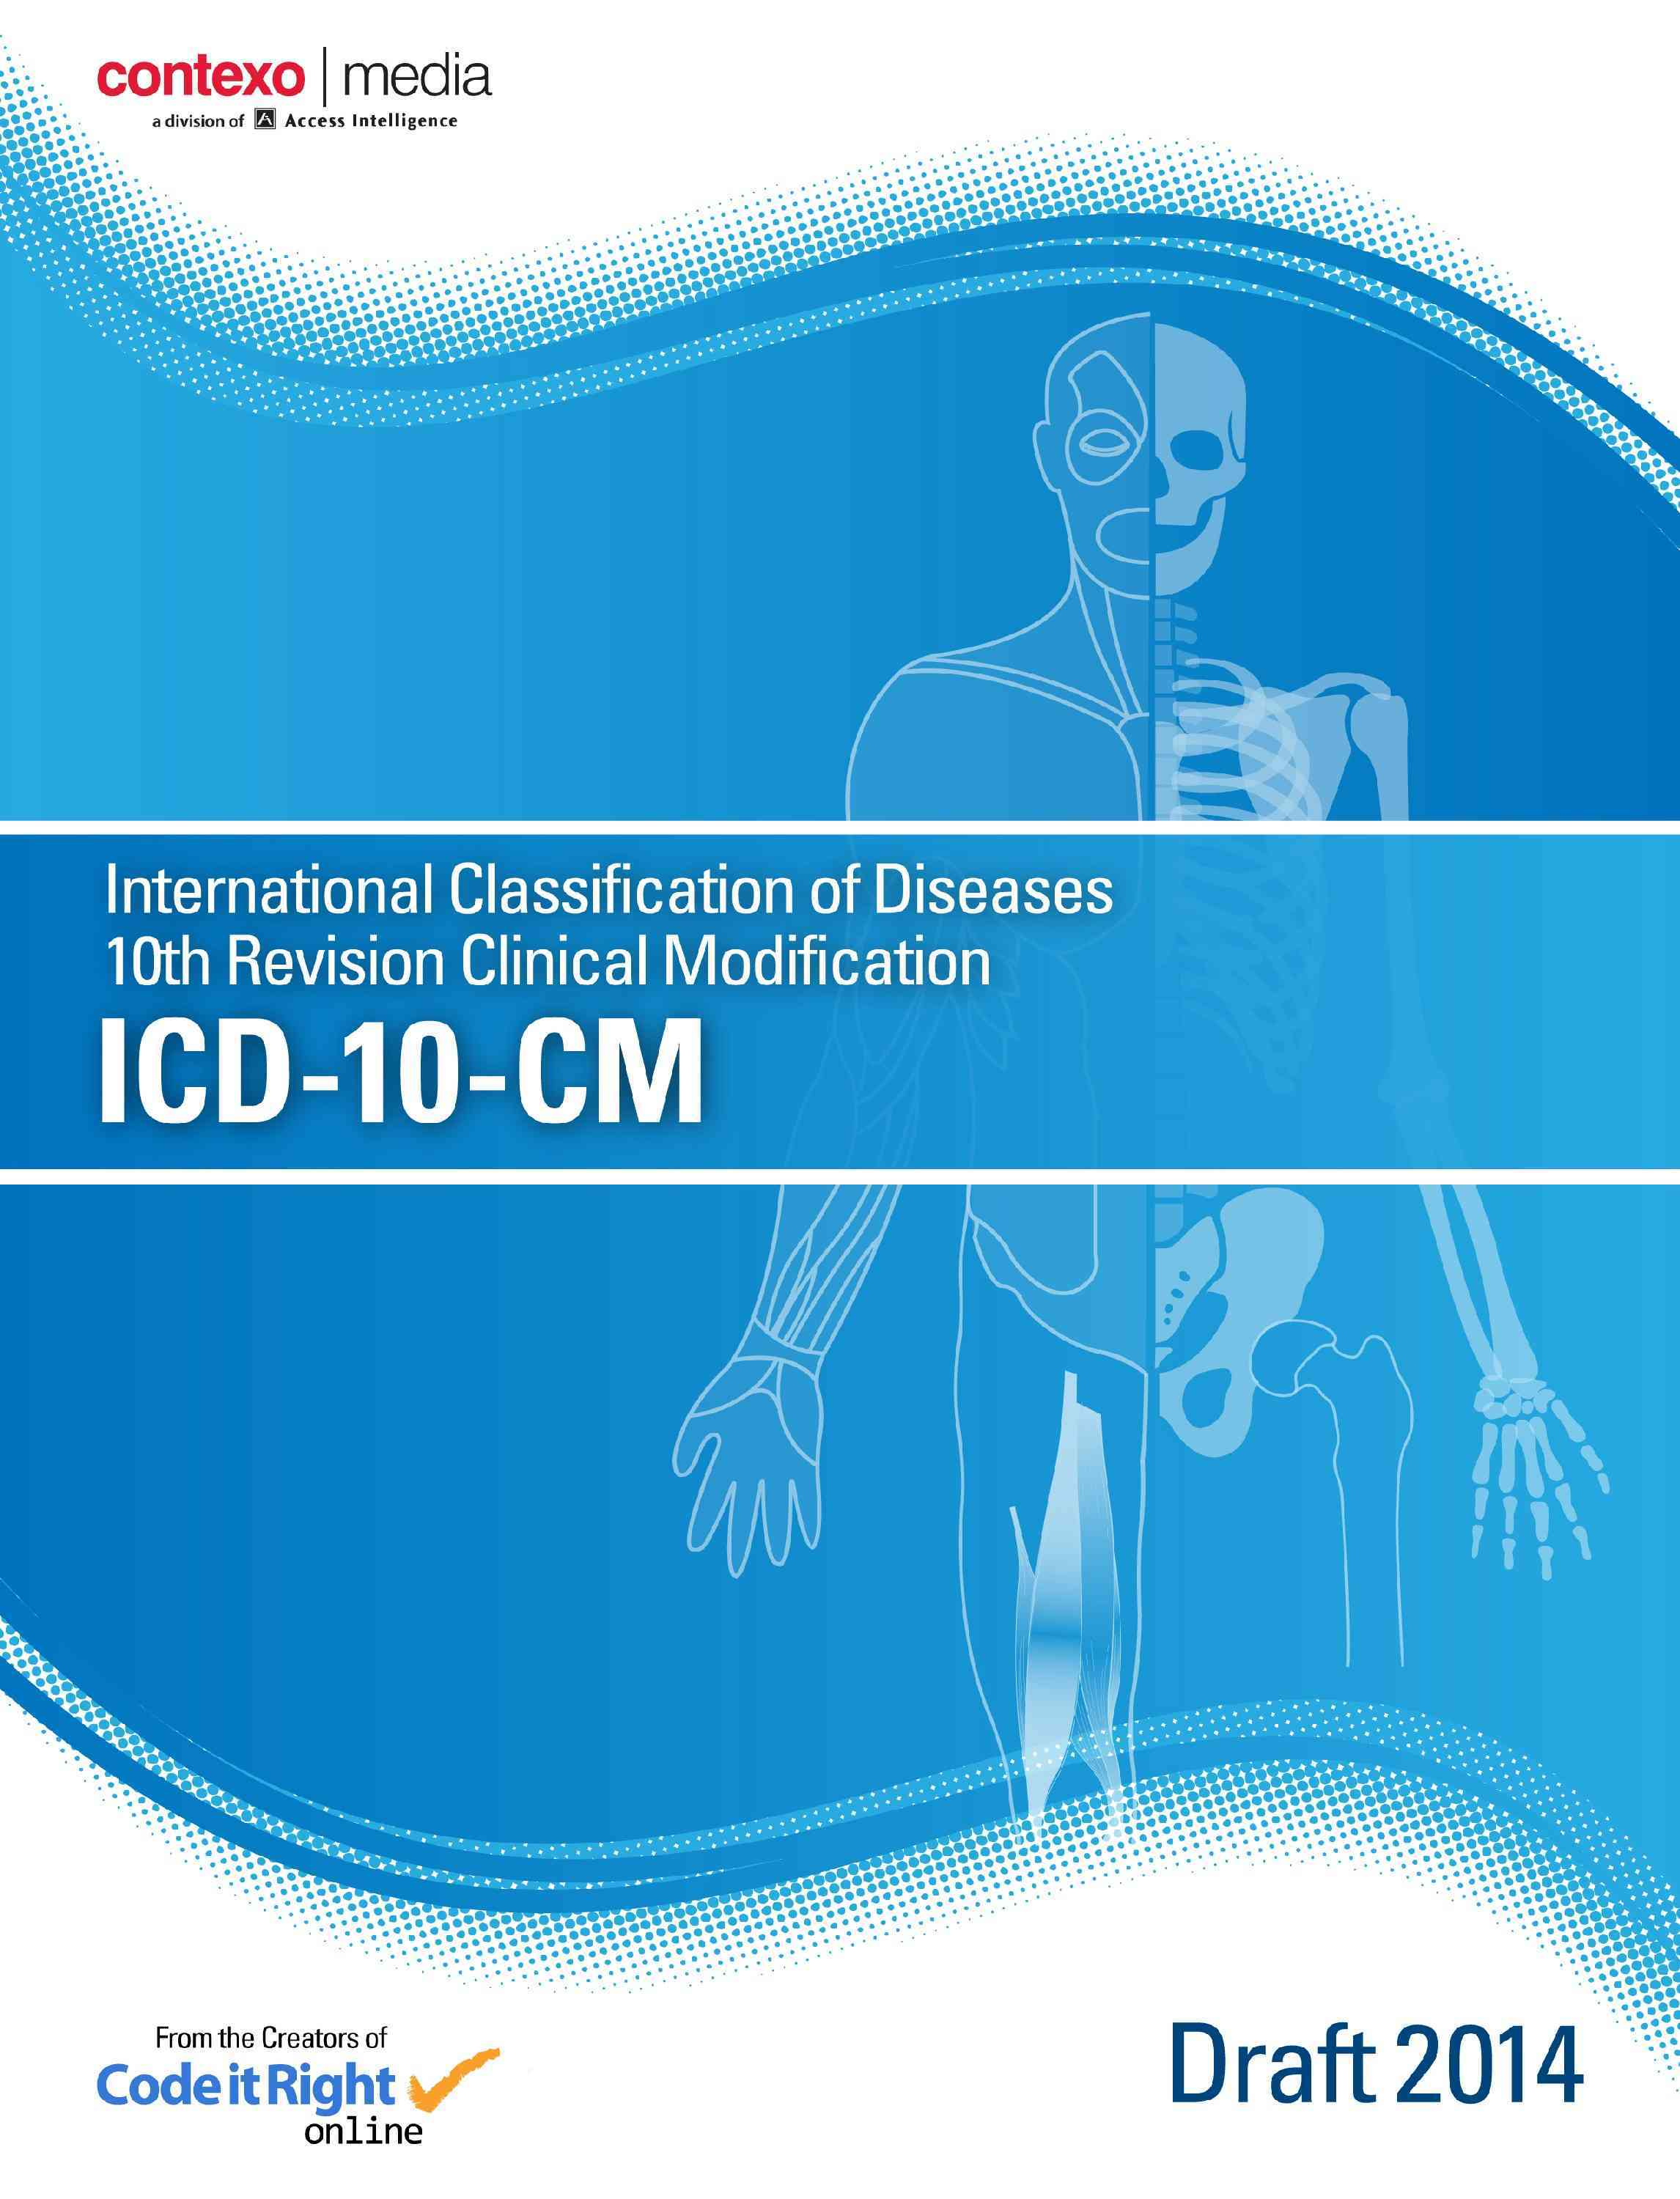 ICD-10-CM, 2014 Draft By Contexo Media